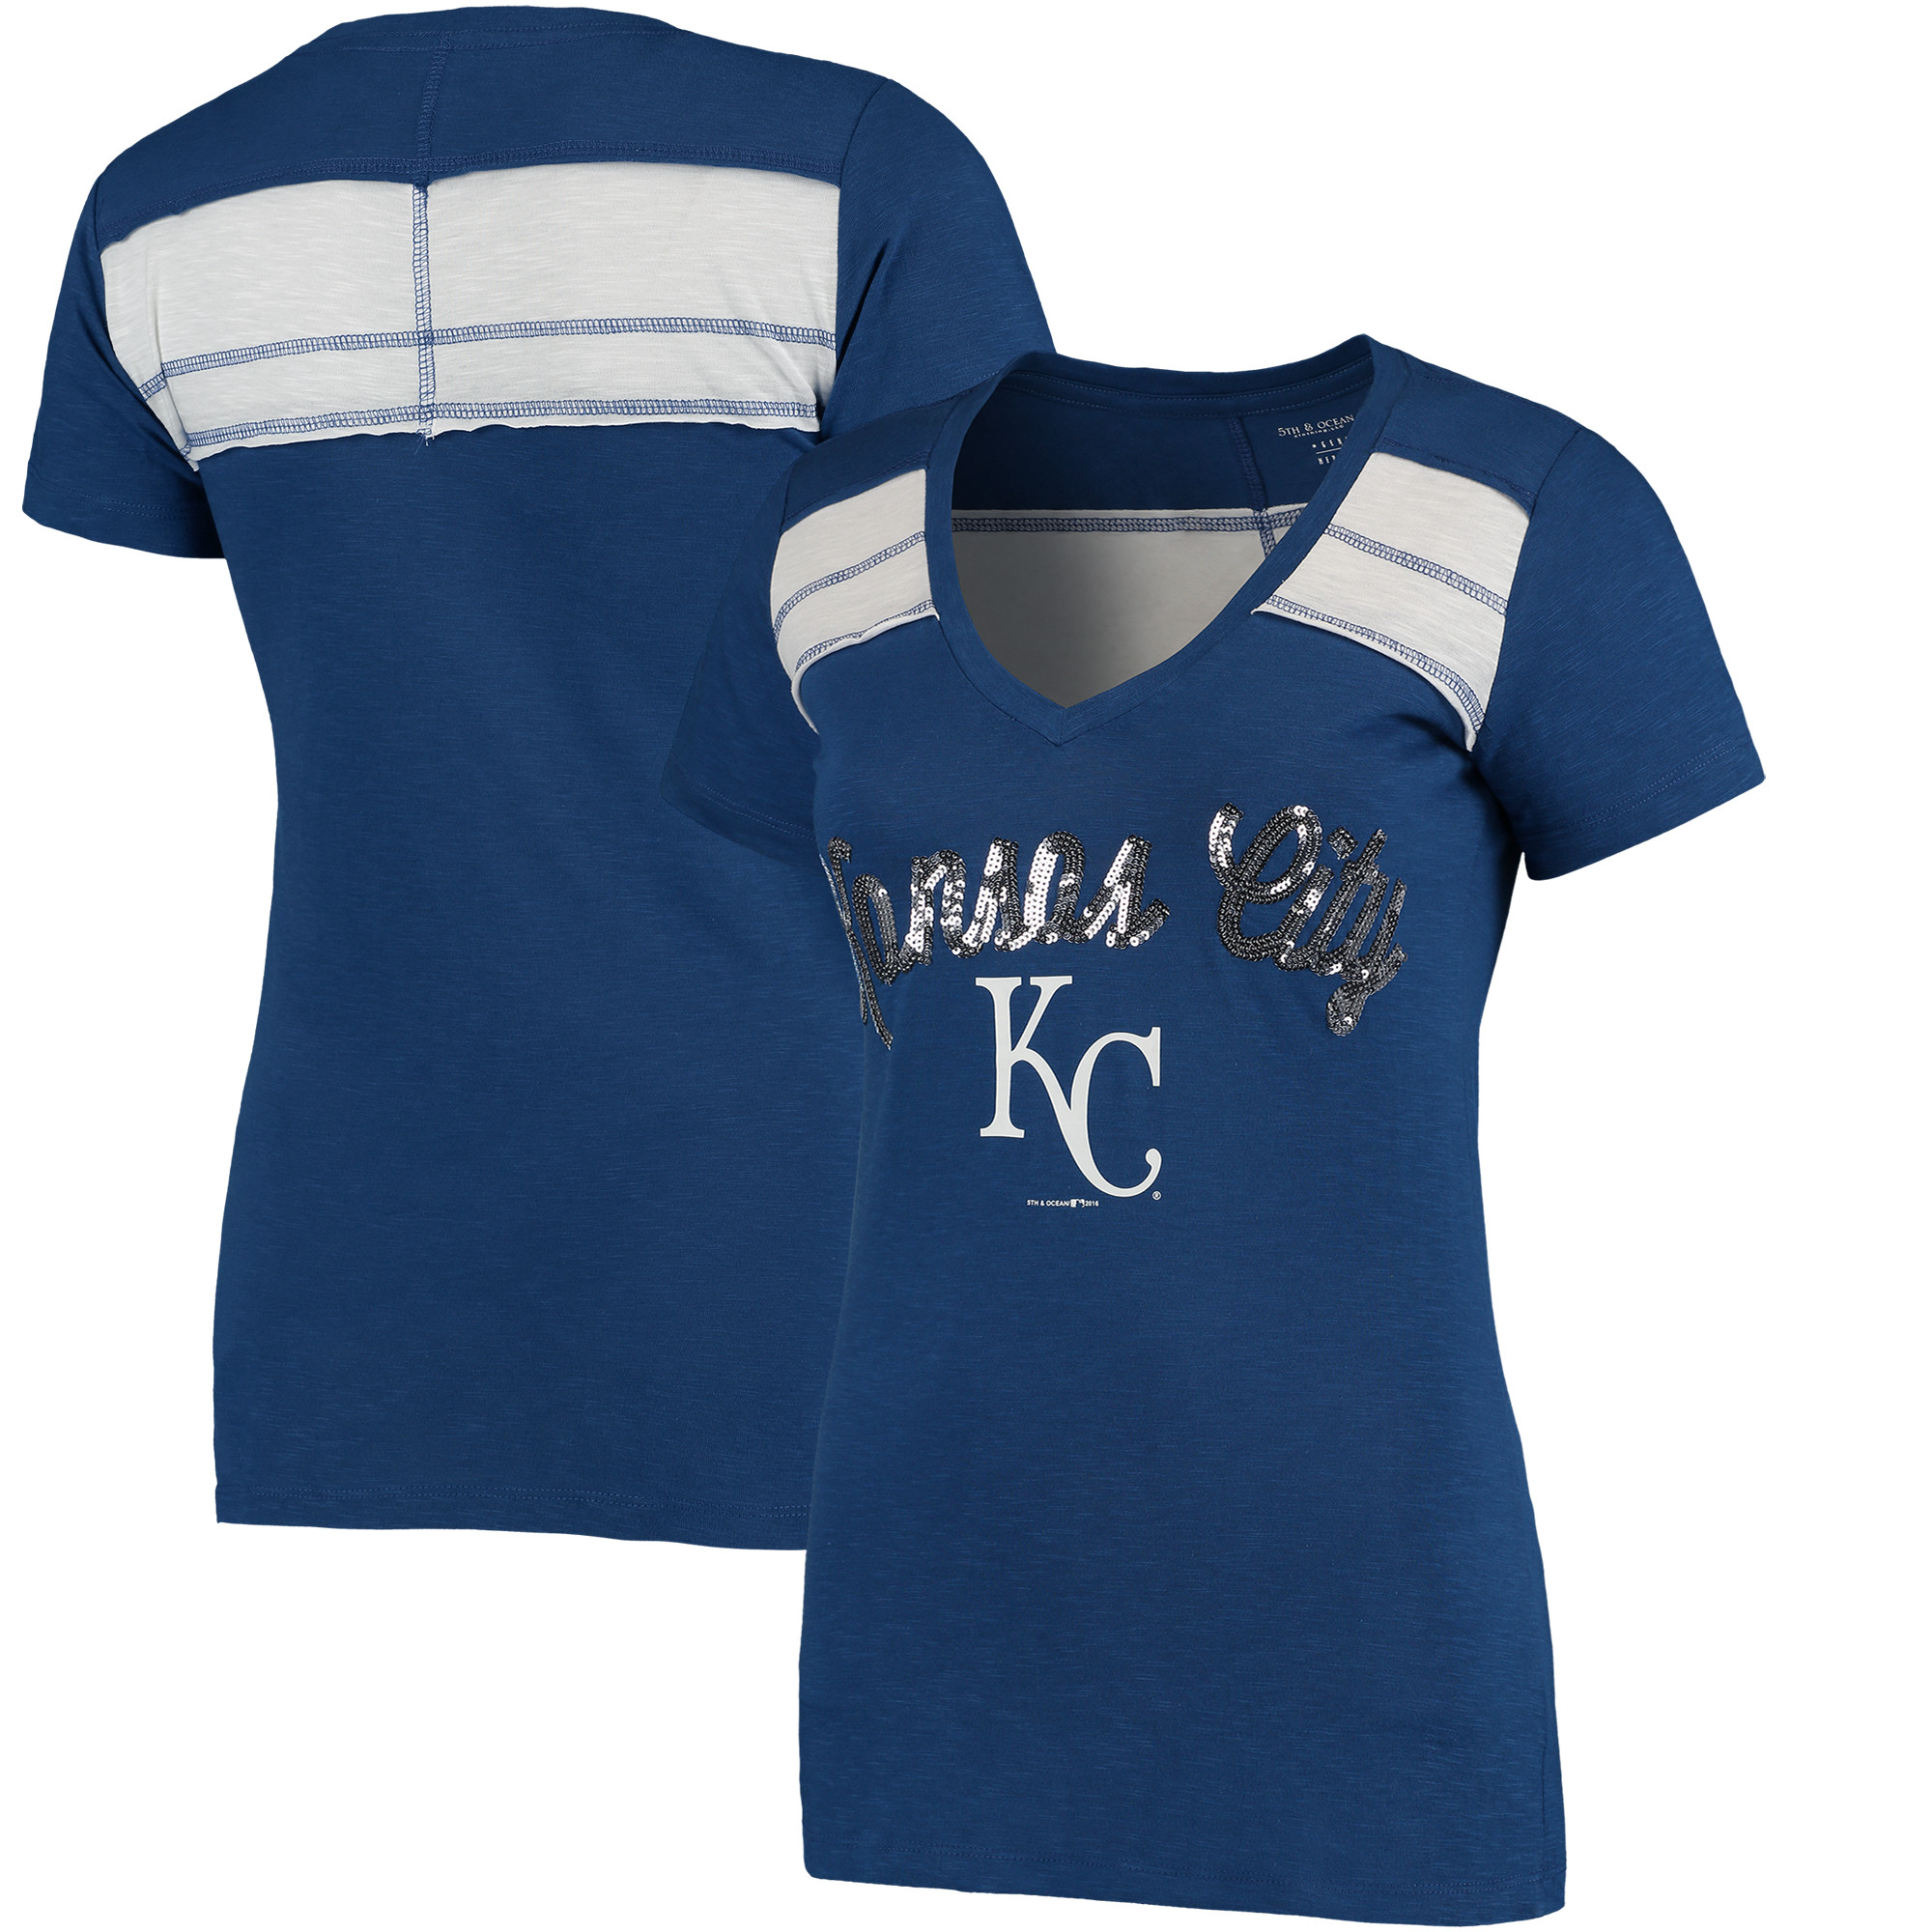 Kansas City Royals 5th & Ocean by New Era Women's MLB Slub V-Neck With Contrast Inserts T-Shirt - Heathered Royal